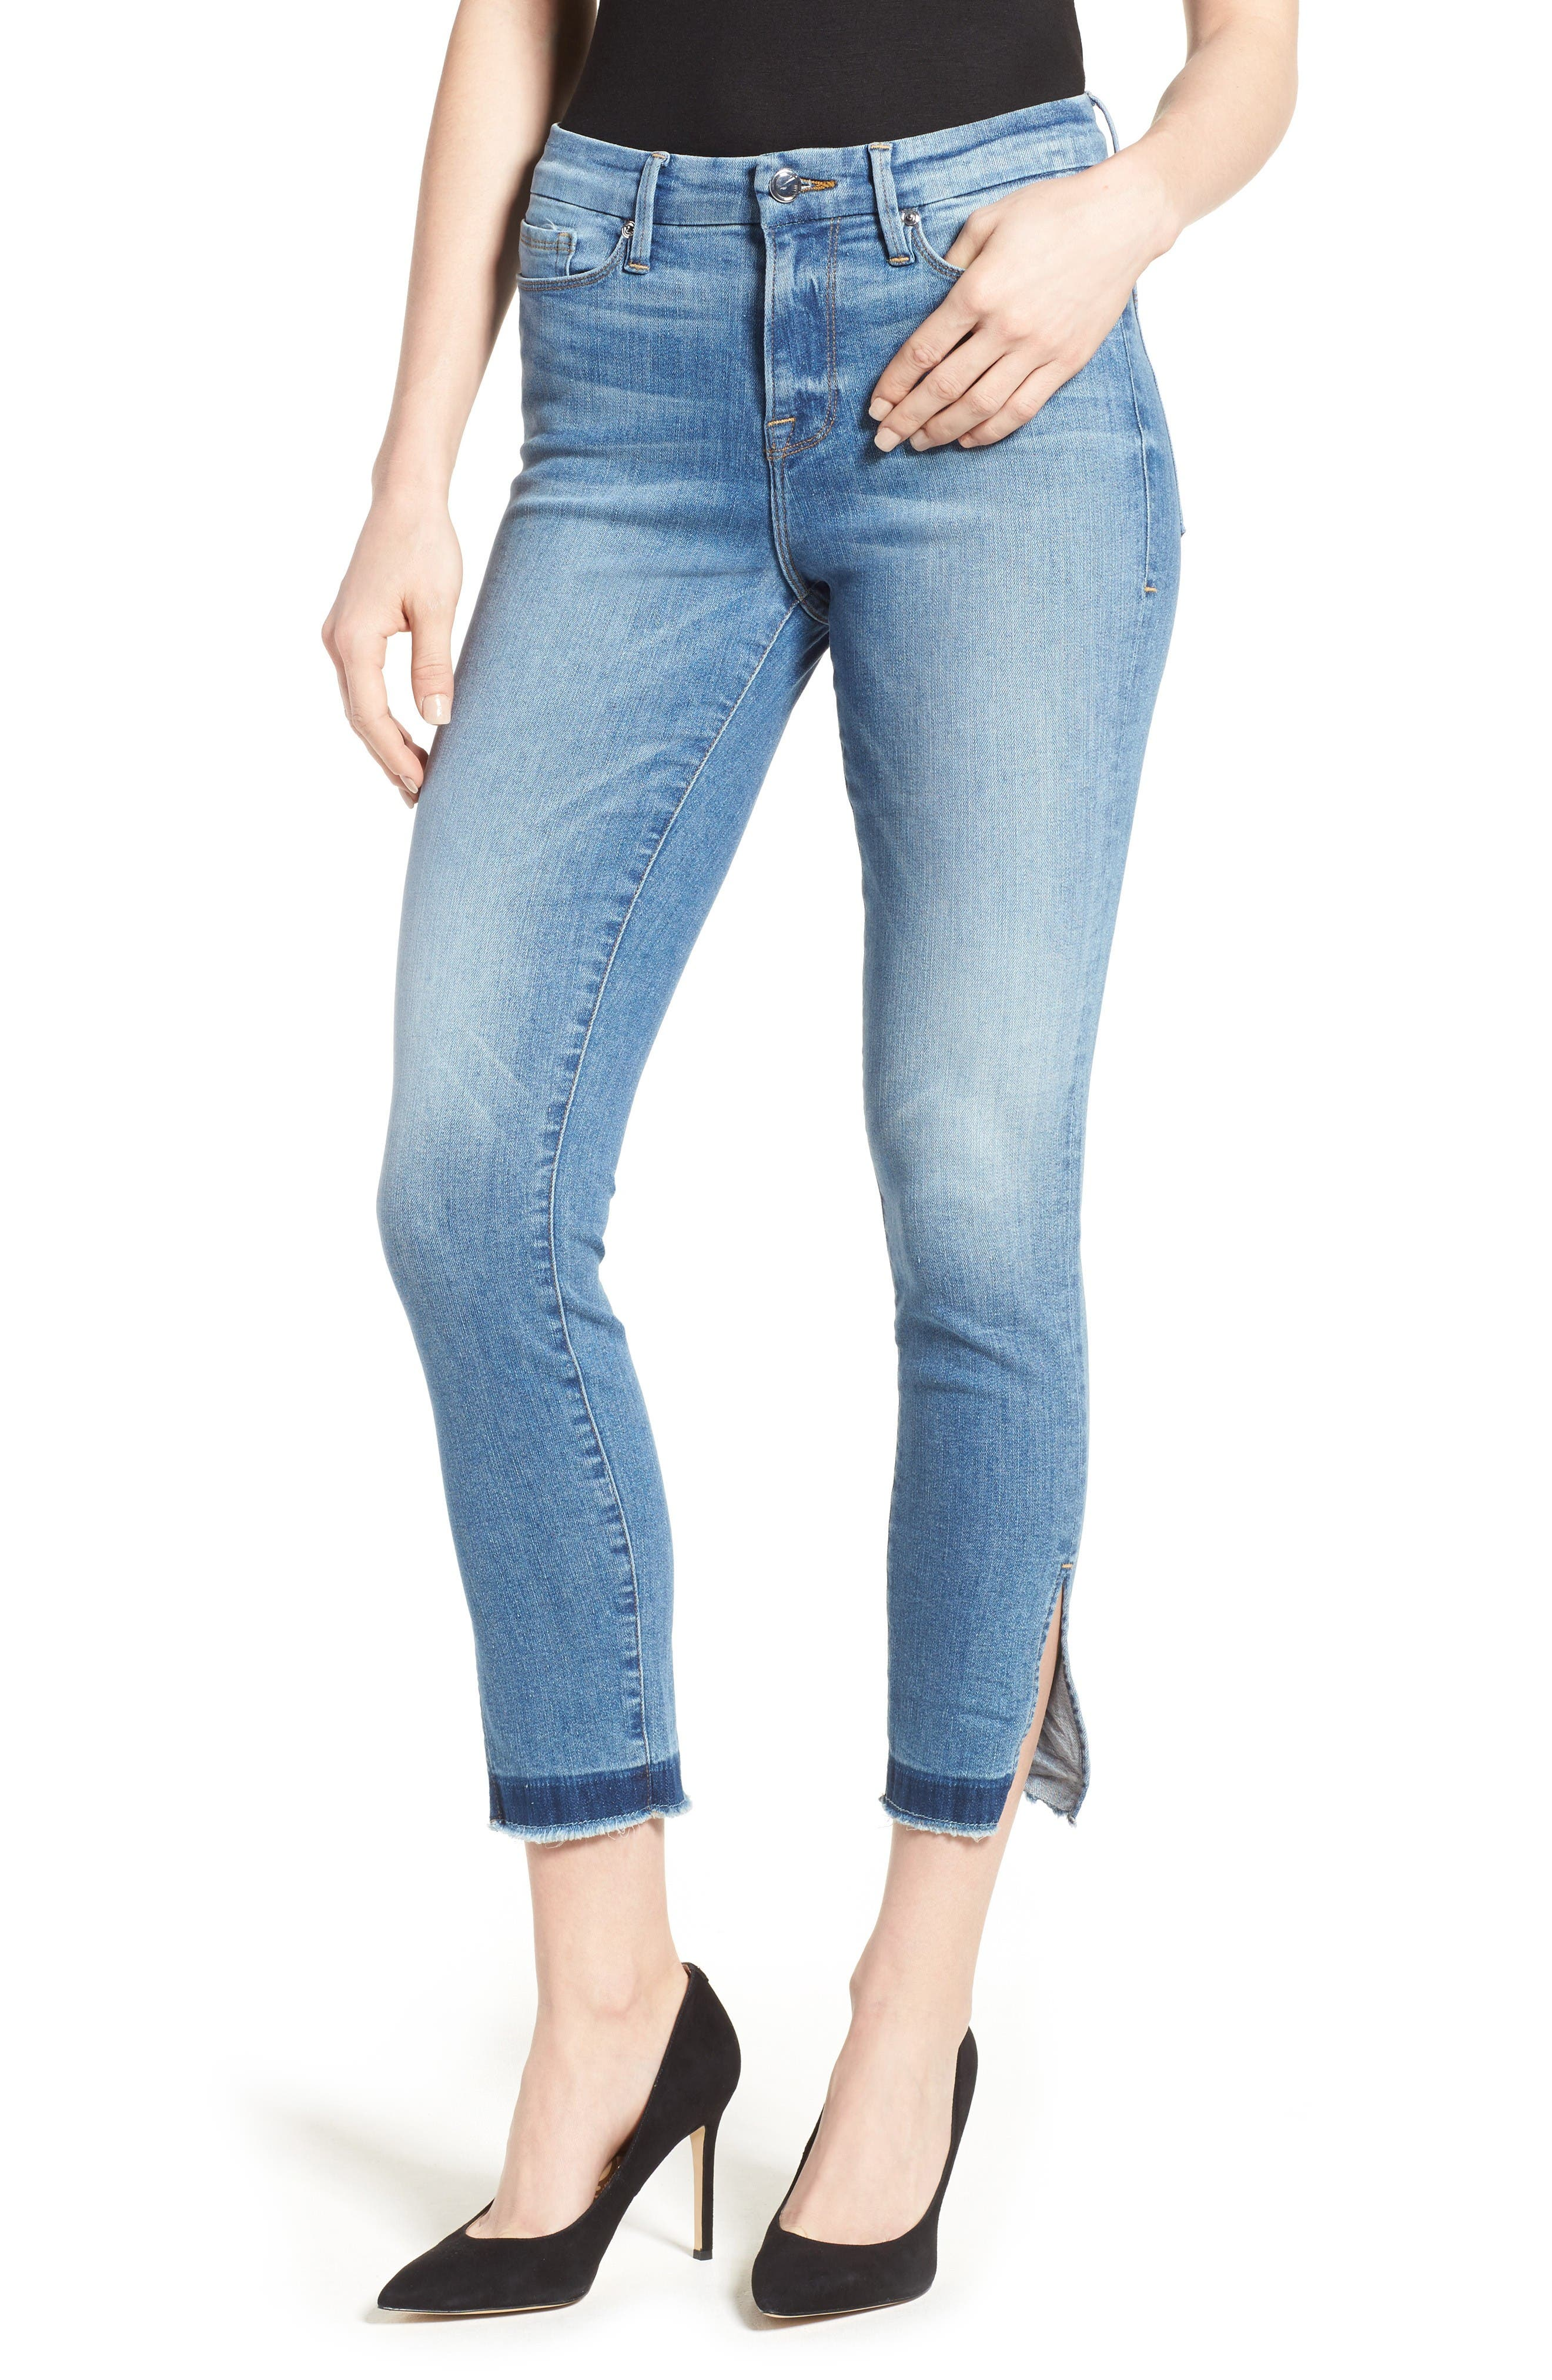 Alternate Image 1 Selected - Good American Good Legs High Rise Split Hem Crop Skinny Jeans (Blue 024) (Extended Sizes)